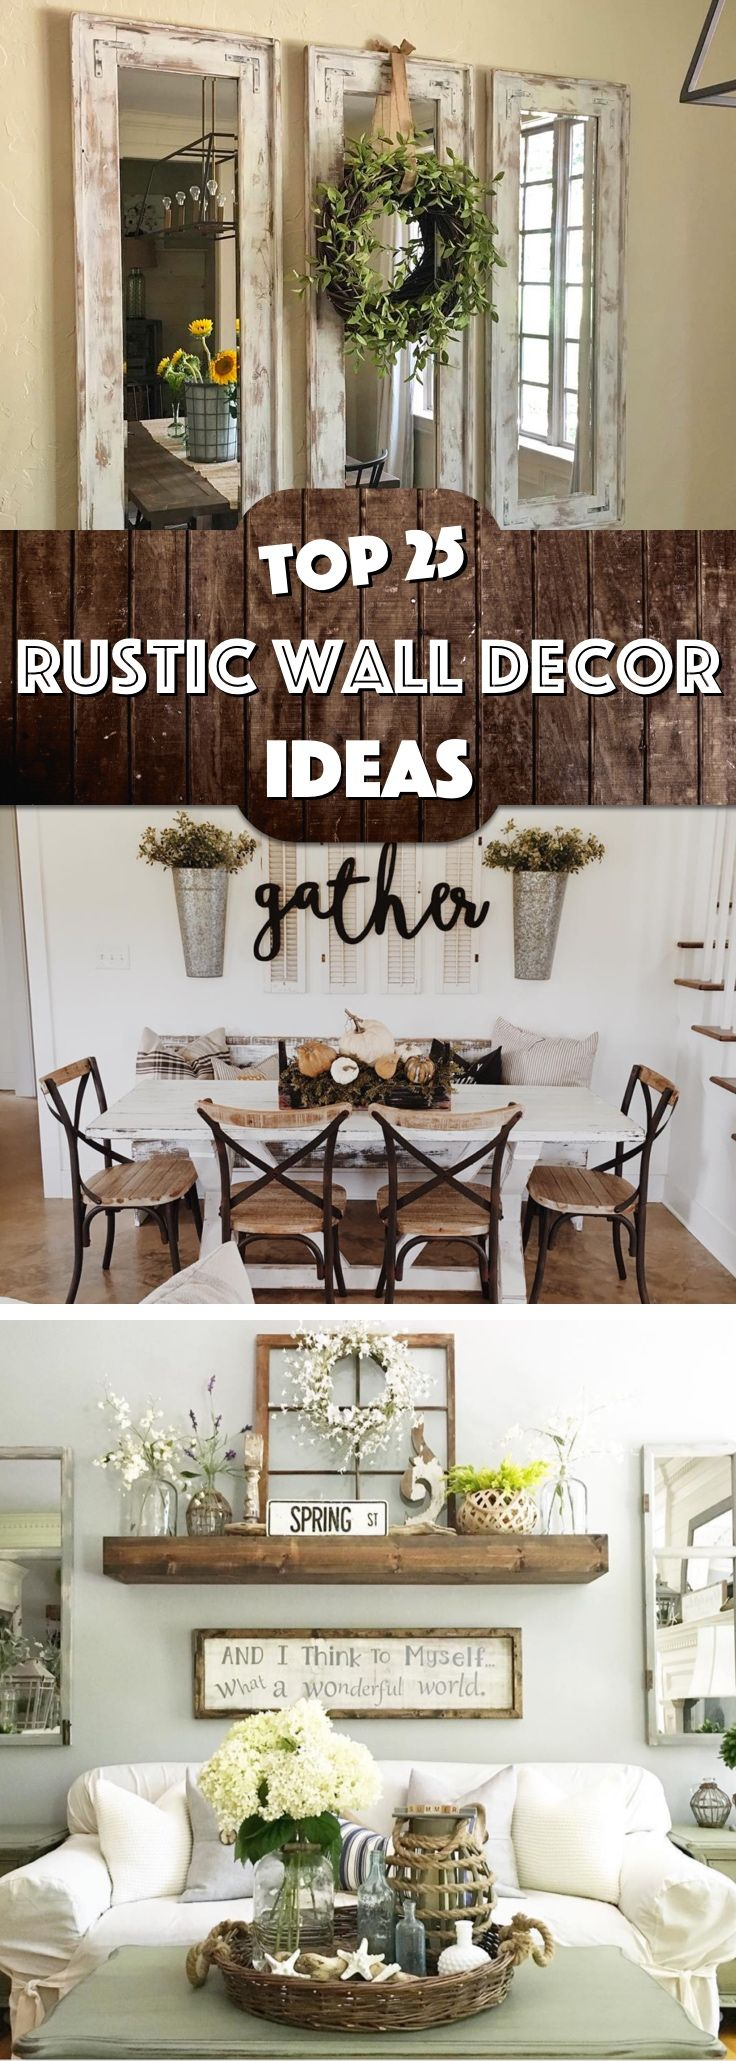 25 Must Try Rustic Wall Decor Ideas Featuring The Most Throughout Casual Country Eat Here Retro Wall Decor (View 5 of 30)